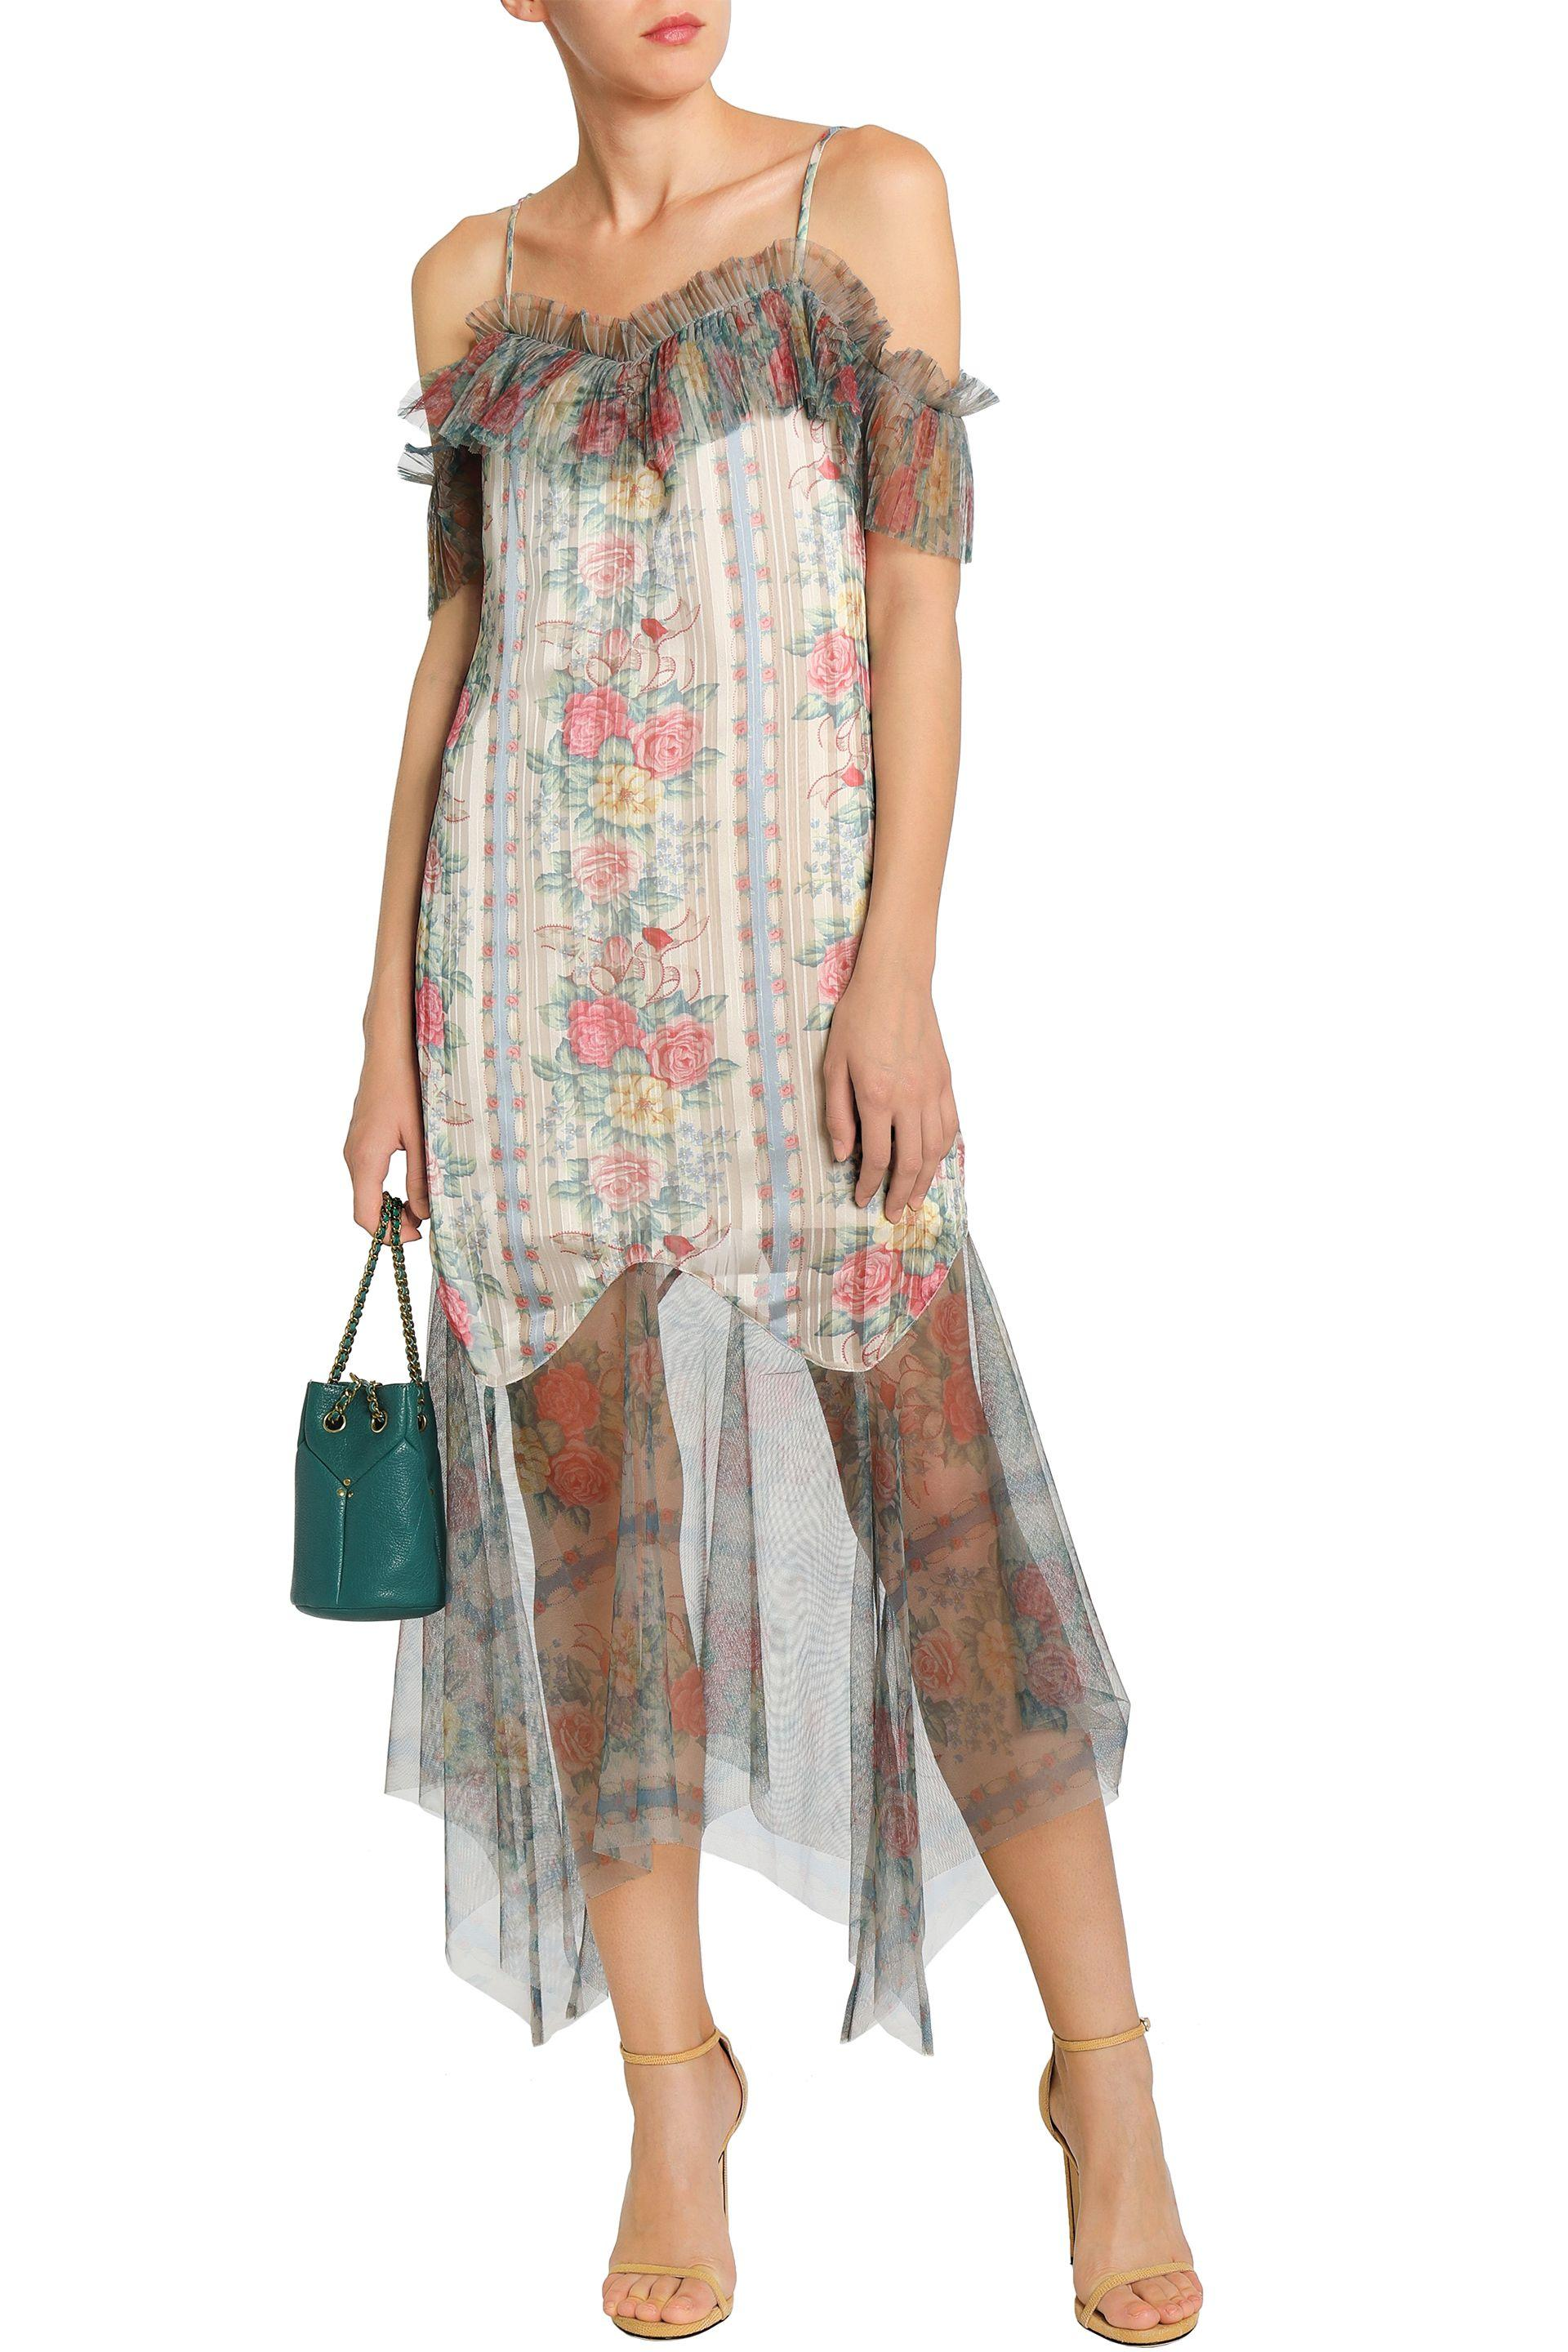 bcb7753c71 Anna Sui - White Woman Cold-shoulder Floral-print Satin-jacquard And Tulle.  View fullscreen